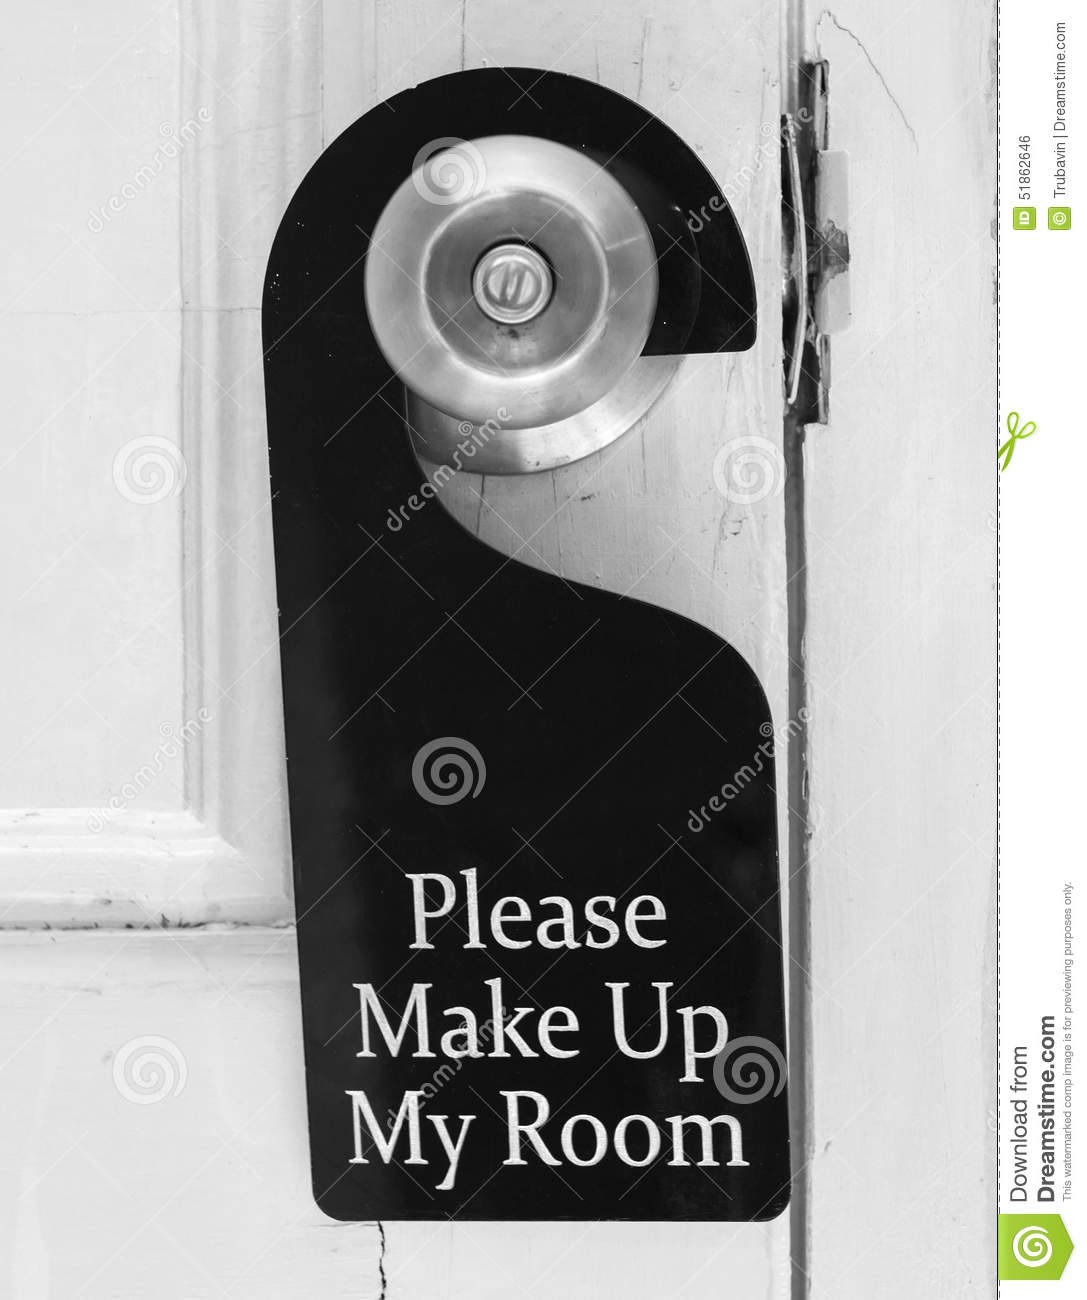 Please clean my room hotel tag stock photo image 51862646 for Make my room